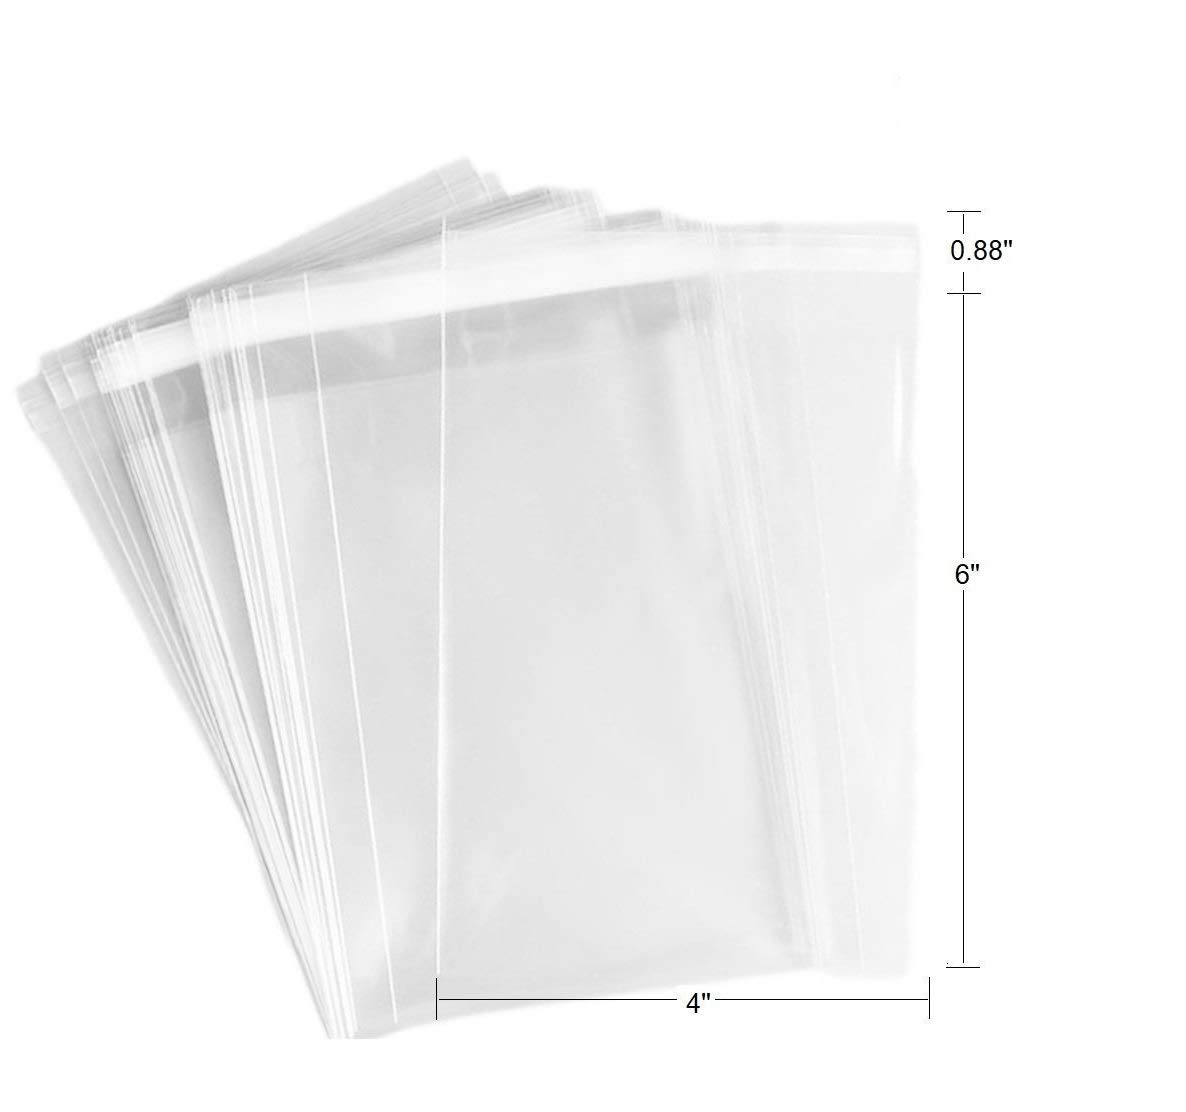 FlanicaUSA 100 pcs 4 x 6 2 Mil Clear Flat Resealable Cello/ Cellophane Bags Good for Bakery, Candle, Soap, Cookie,jewelry items bags.